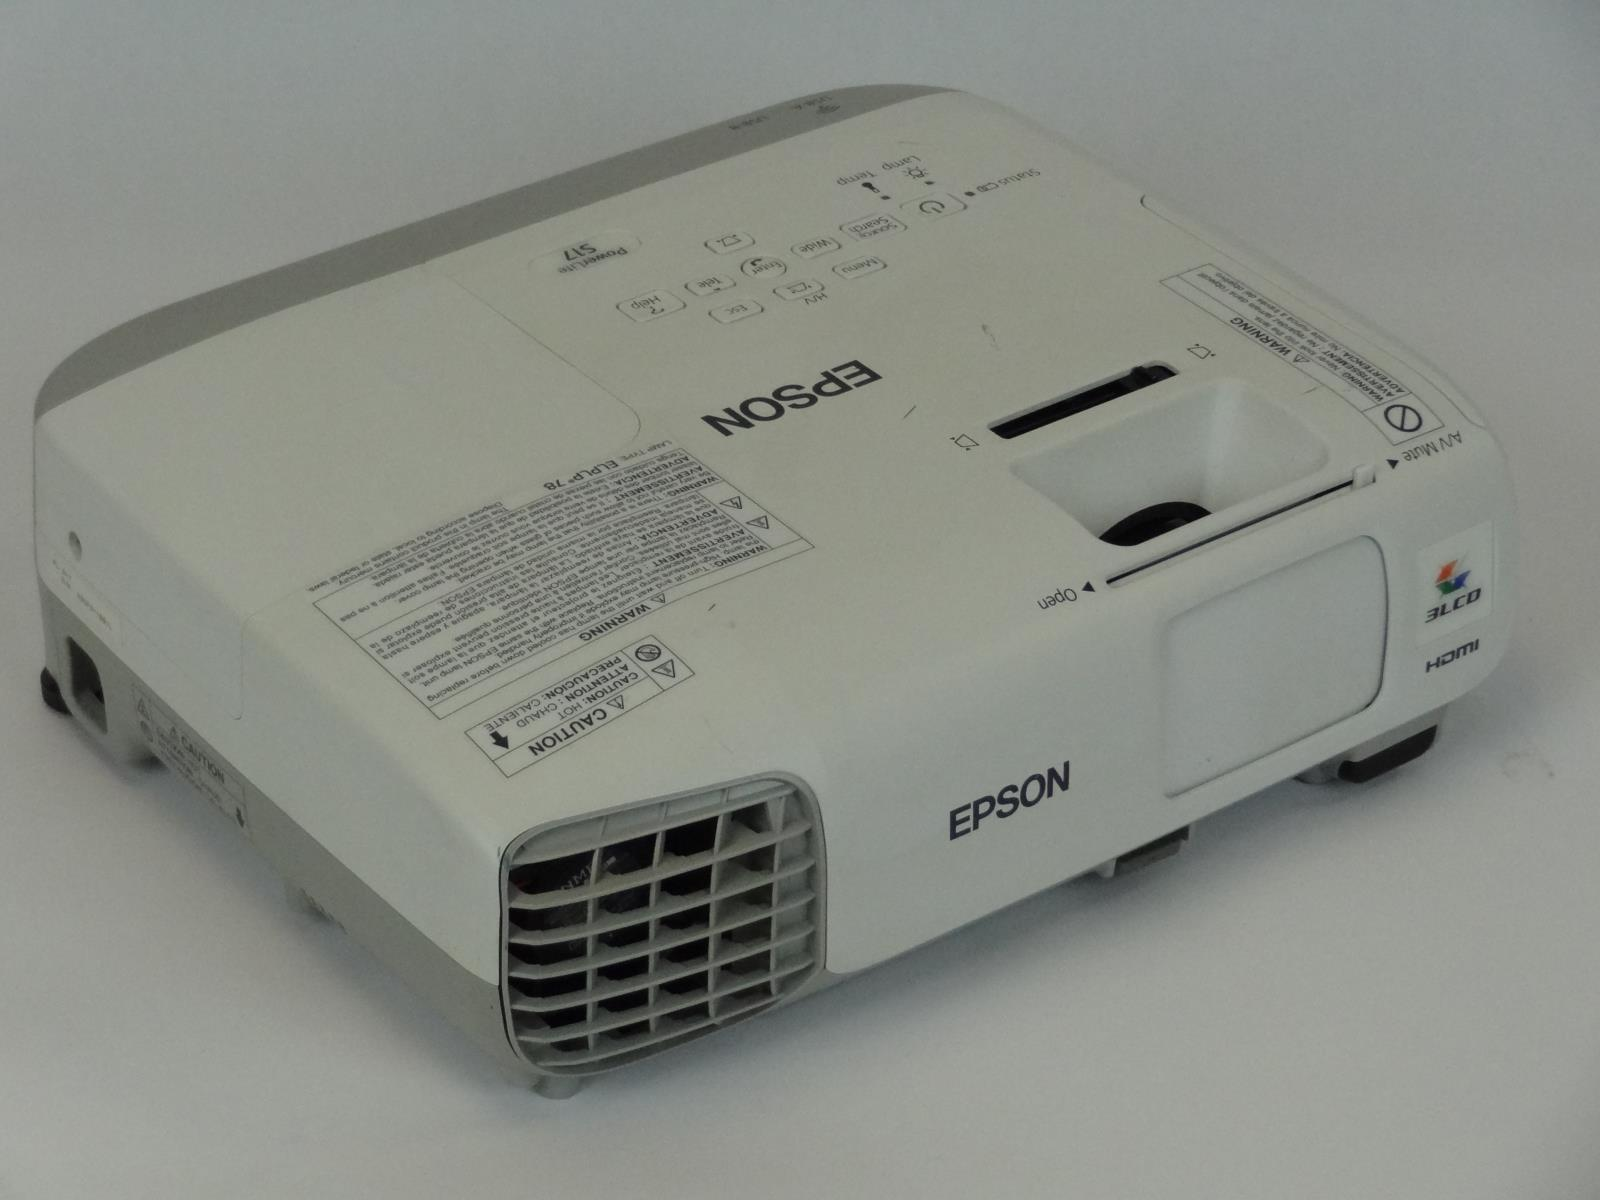 epson powerlite s17 3lcd projector 2660 total lamp hours ebayepson powerlite s17 3lcd projector 2660 total lamp hours